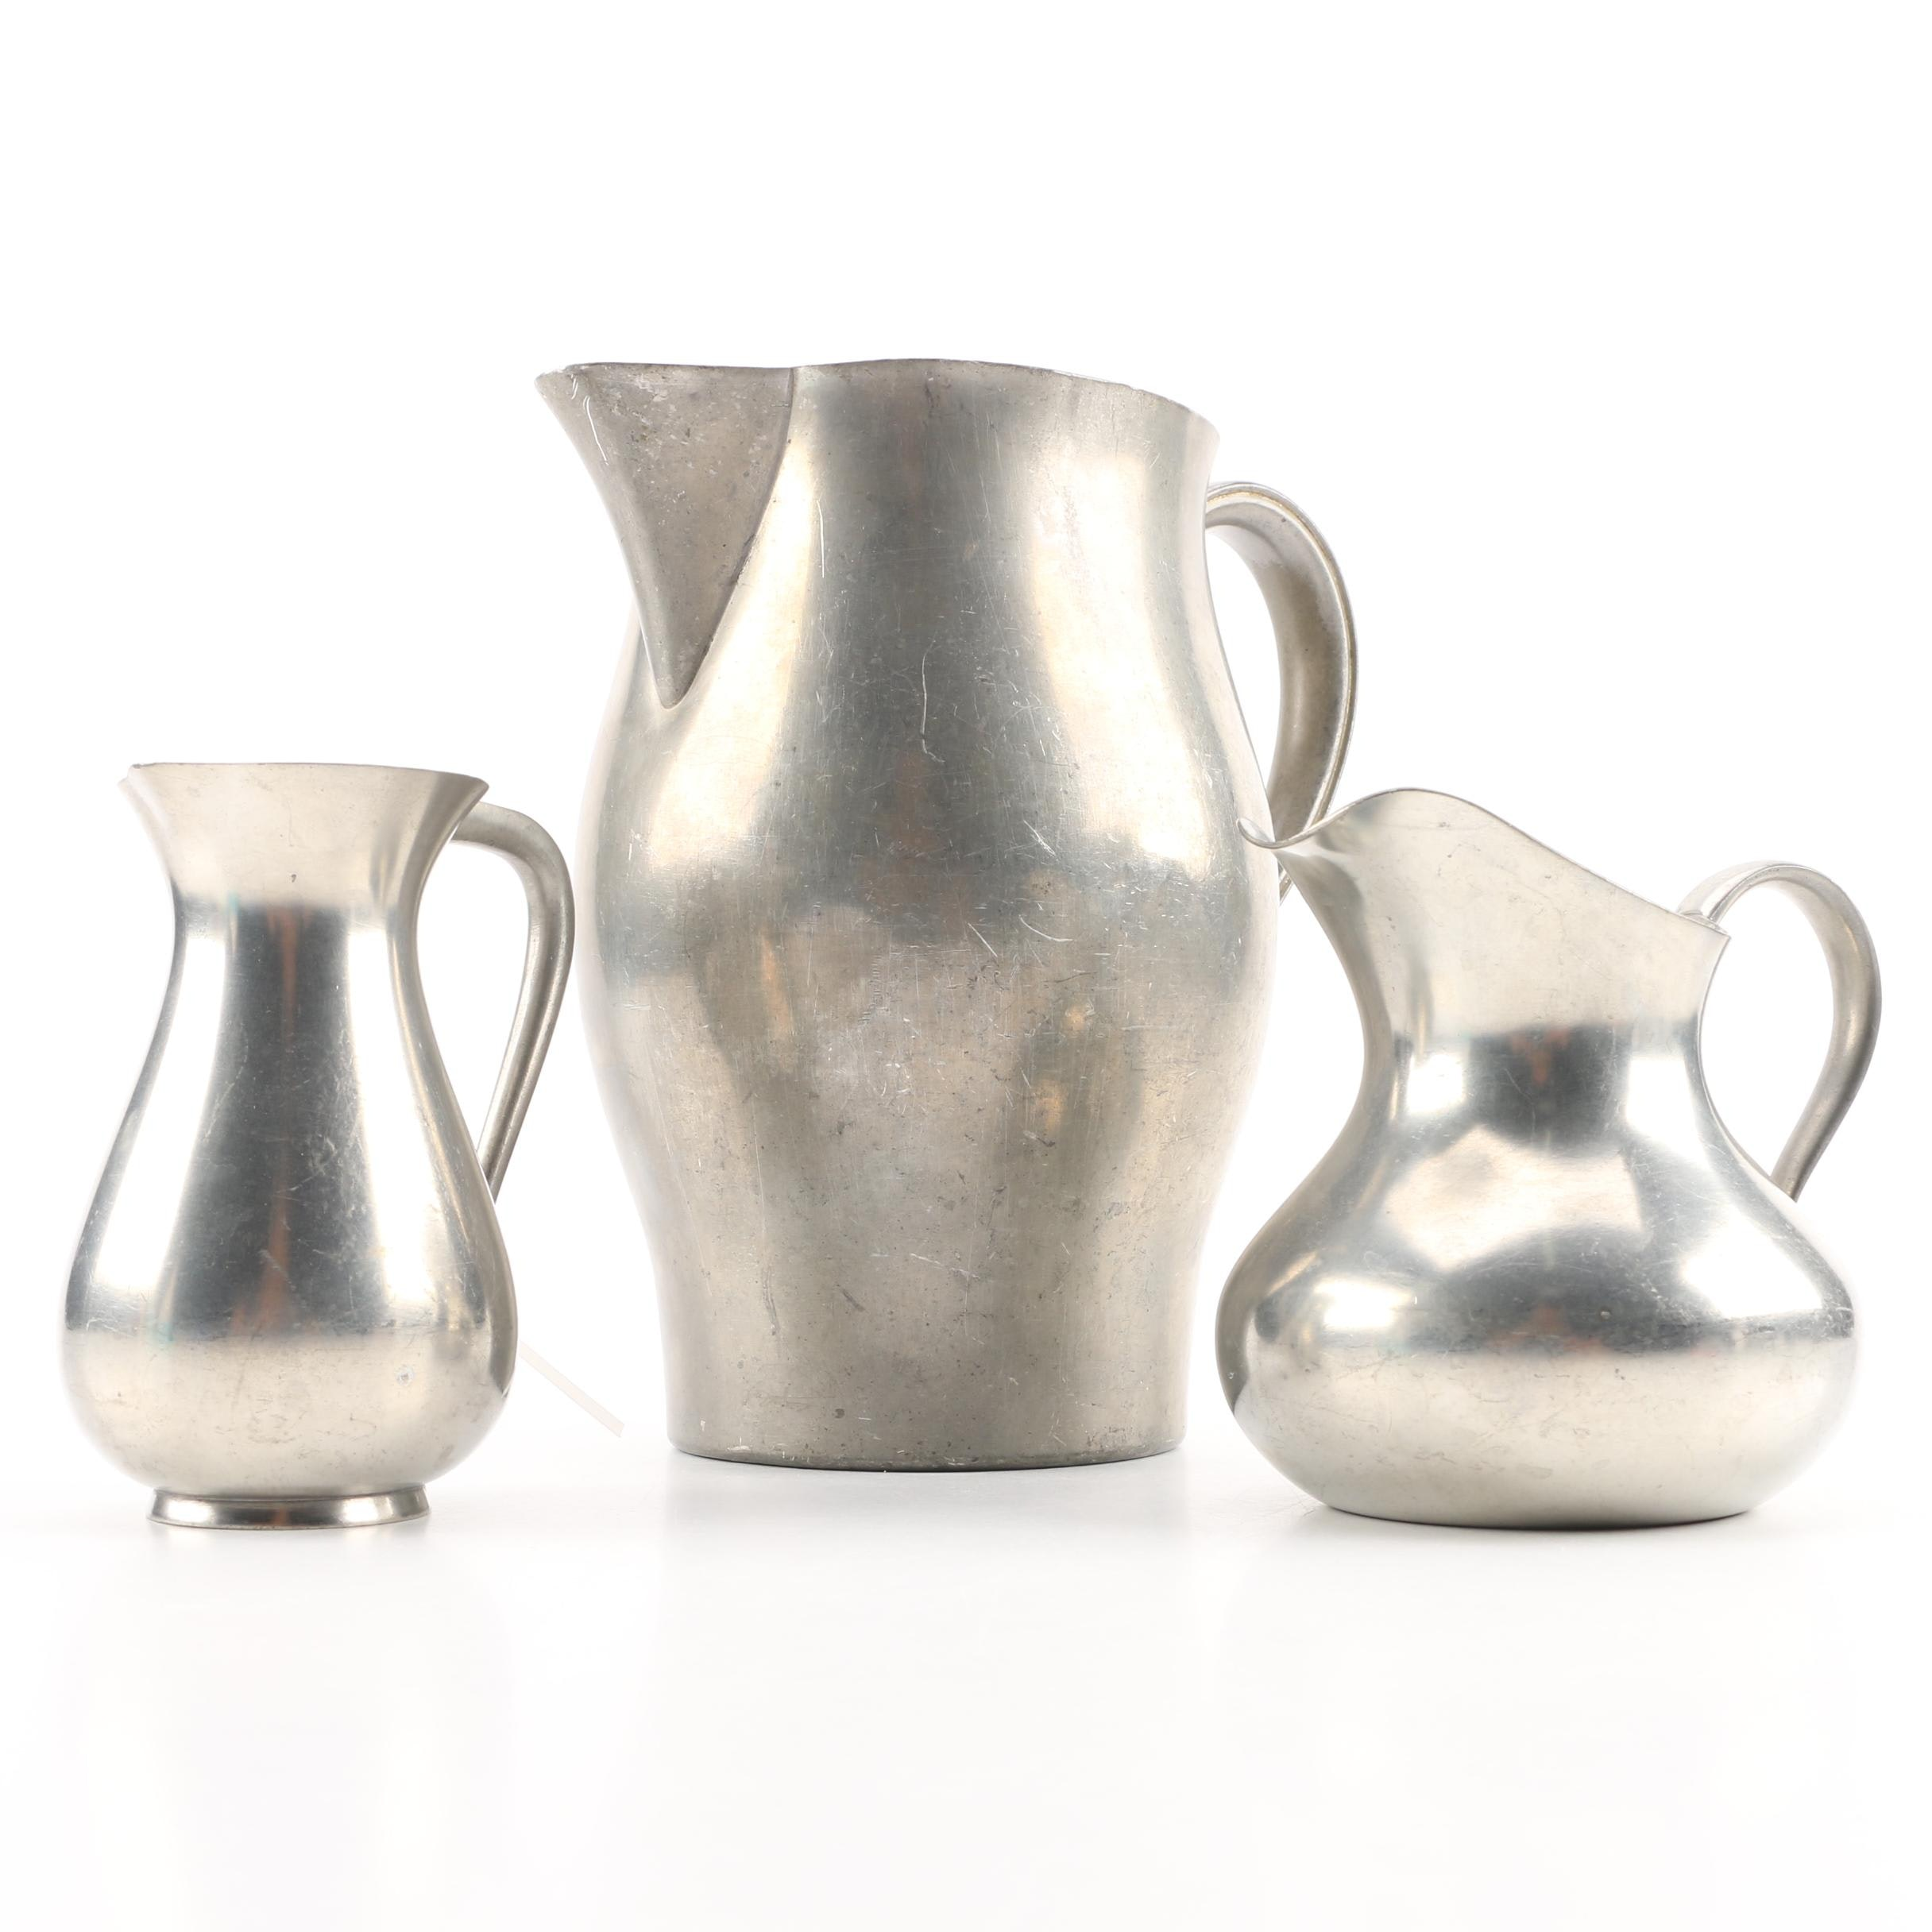 International Pewter Pitcher with KMD Royal Holland Pewter Creamers